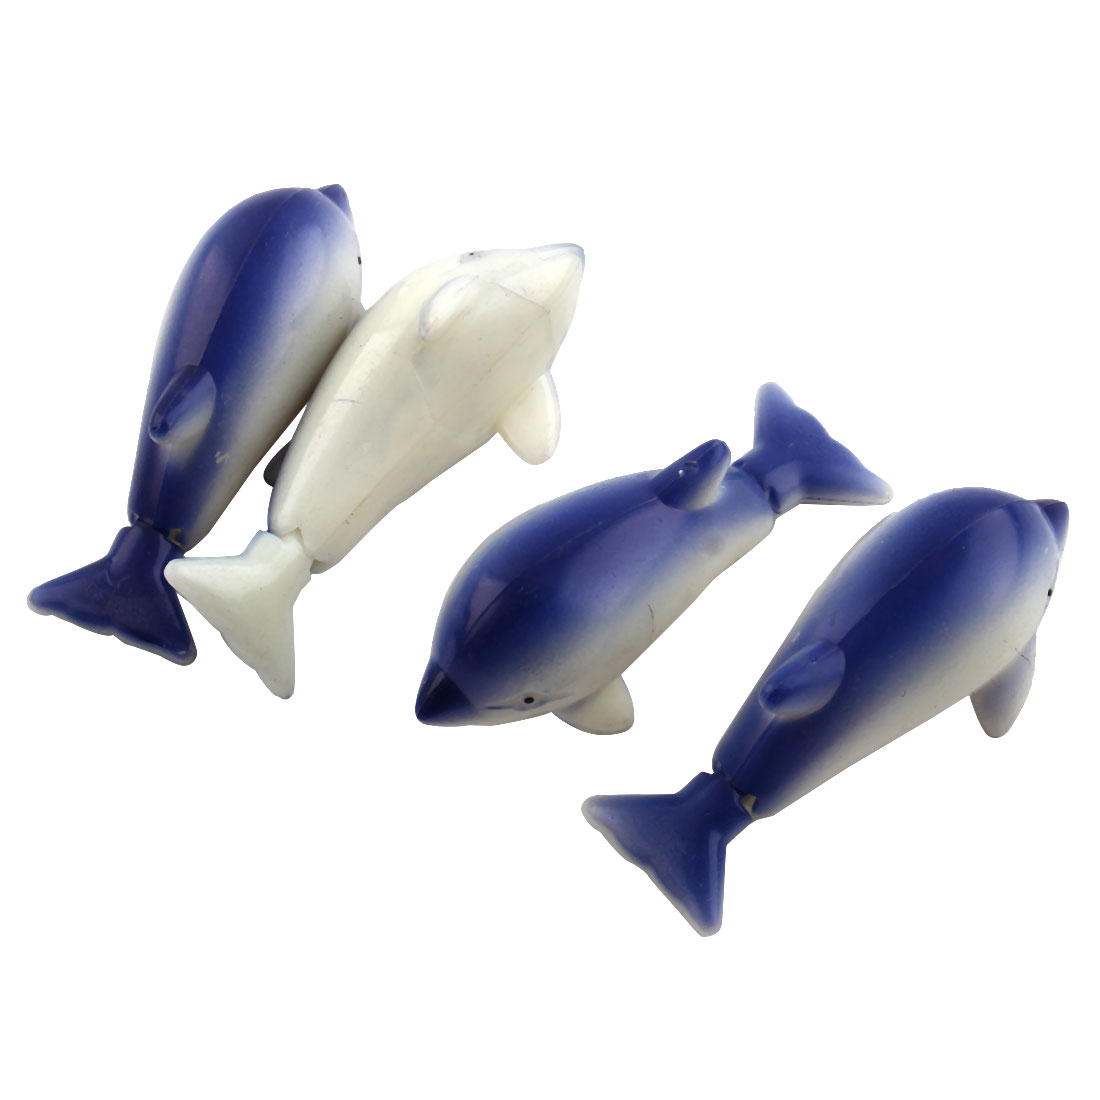 Aquarium Fish Tank Simulated Swing Tail Movable Dolphin Shaped Ornaments 4 Pcs